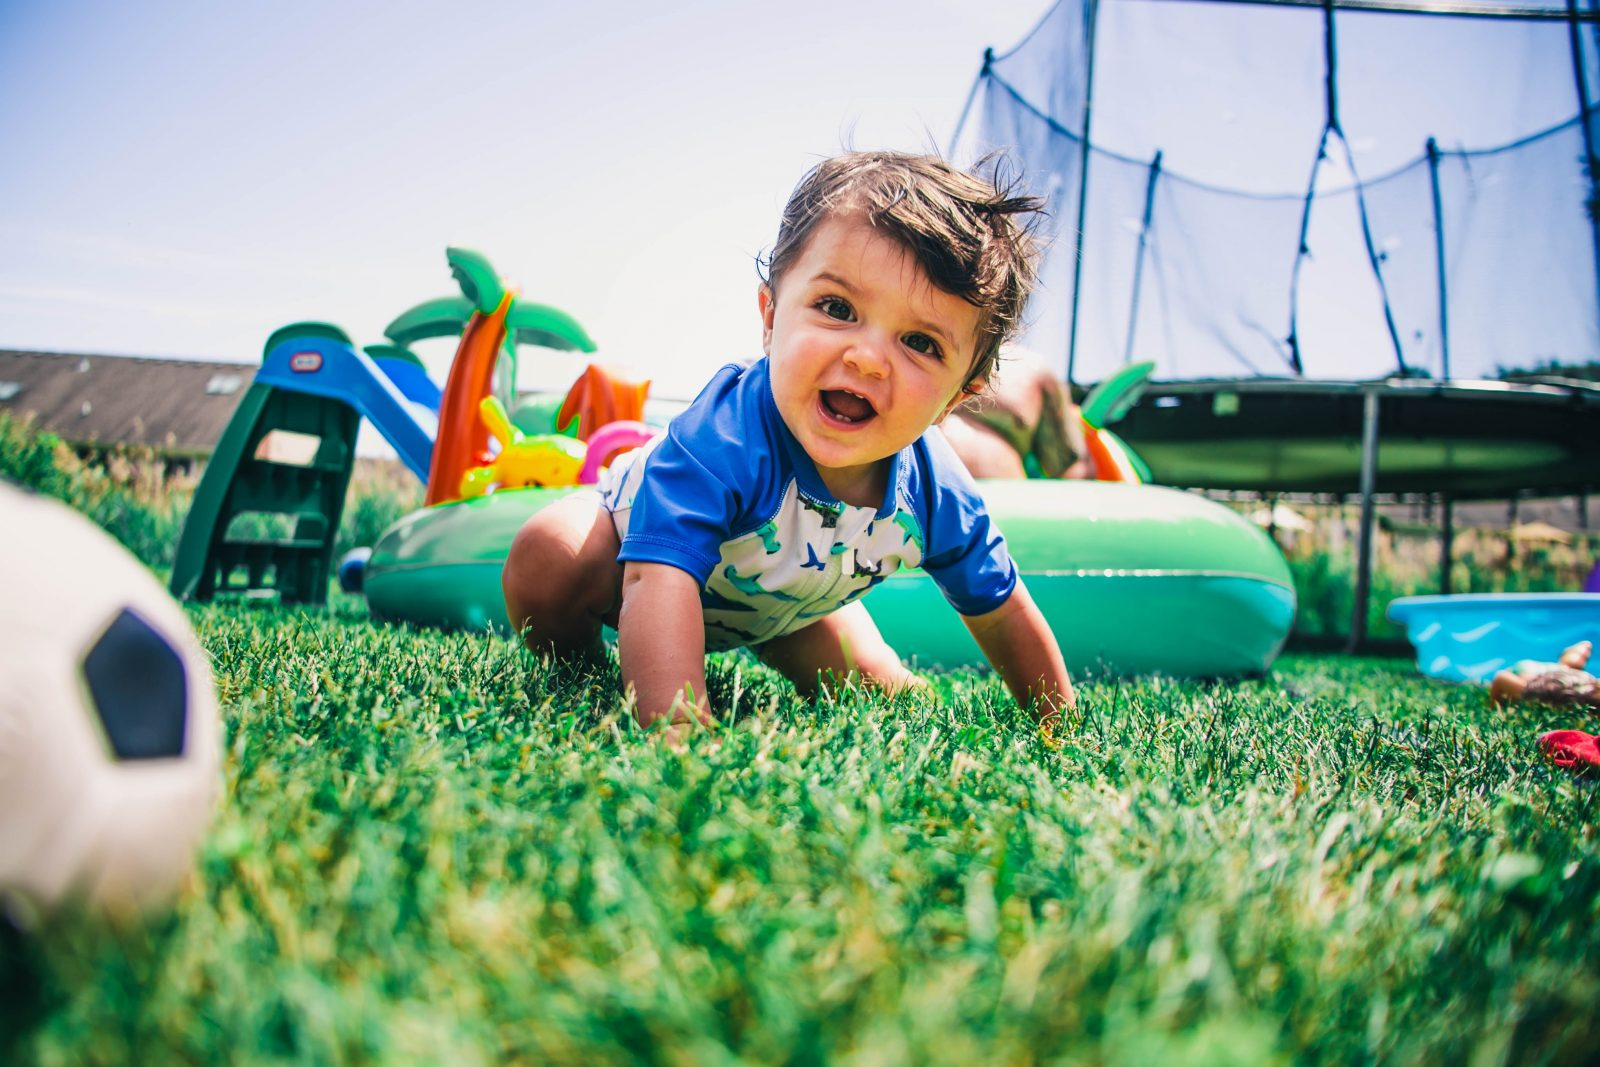 Is artificial grass child-friendly?